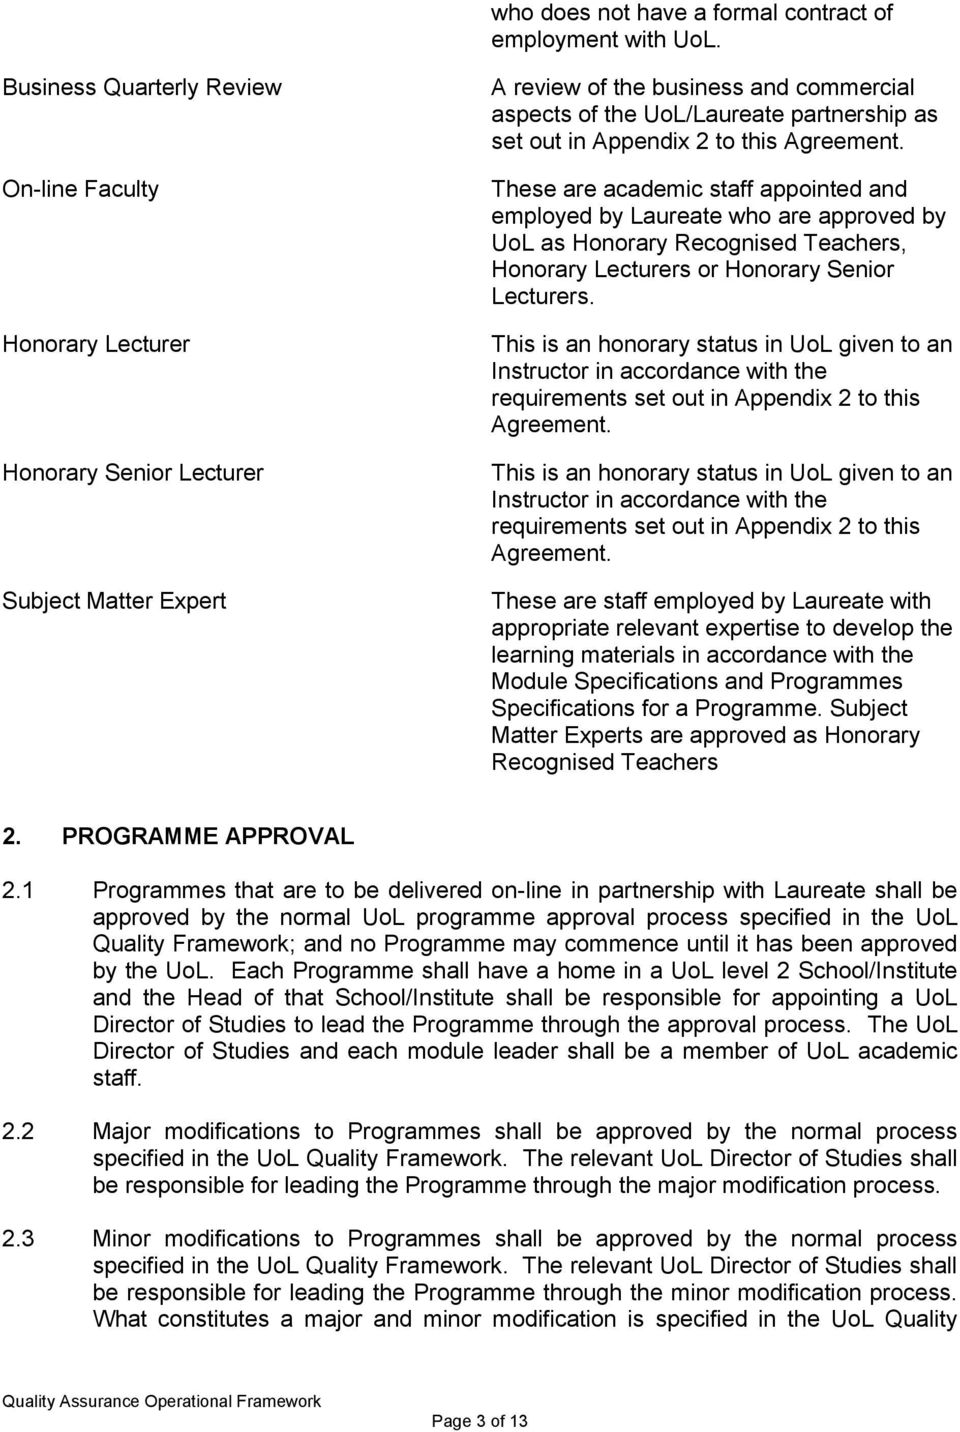 in Appendix 2 to this Agreement. These are academic staff appointed and employed by Laureate who are approved by UoL as Honorary Recognised Teachers, Honorary Lecturers or Honorary Senior Lecturers.